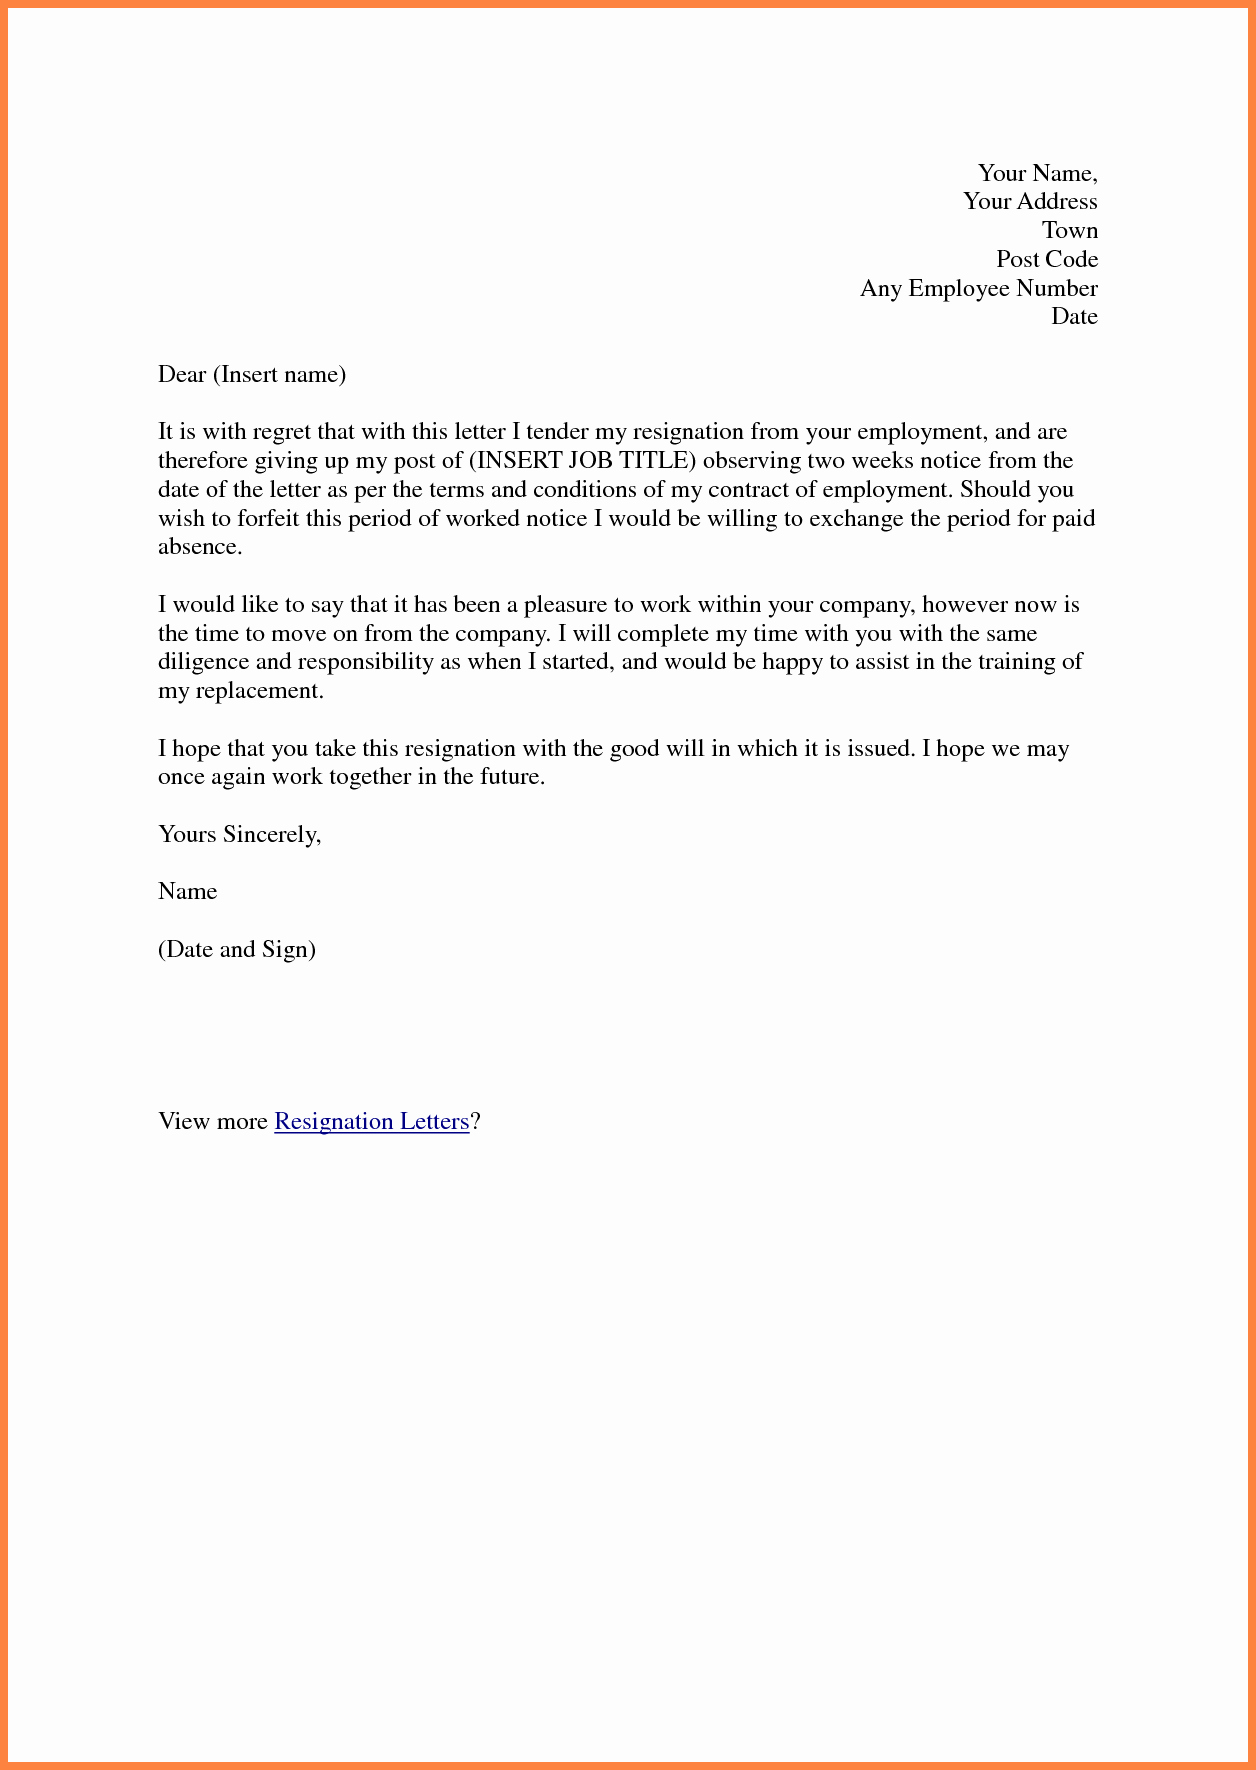 2 Weeks Notice Email Template Beautiful 3 Good 2 Week Notice Letters